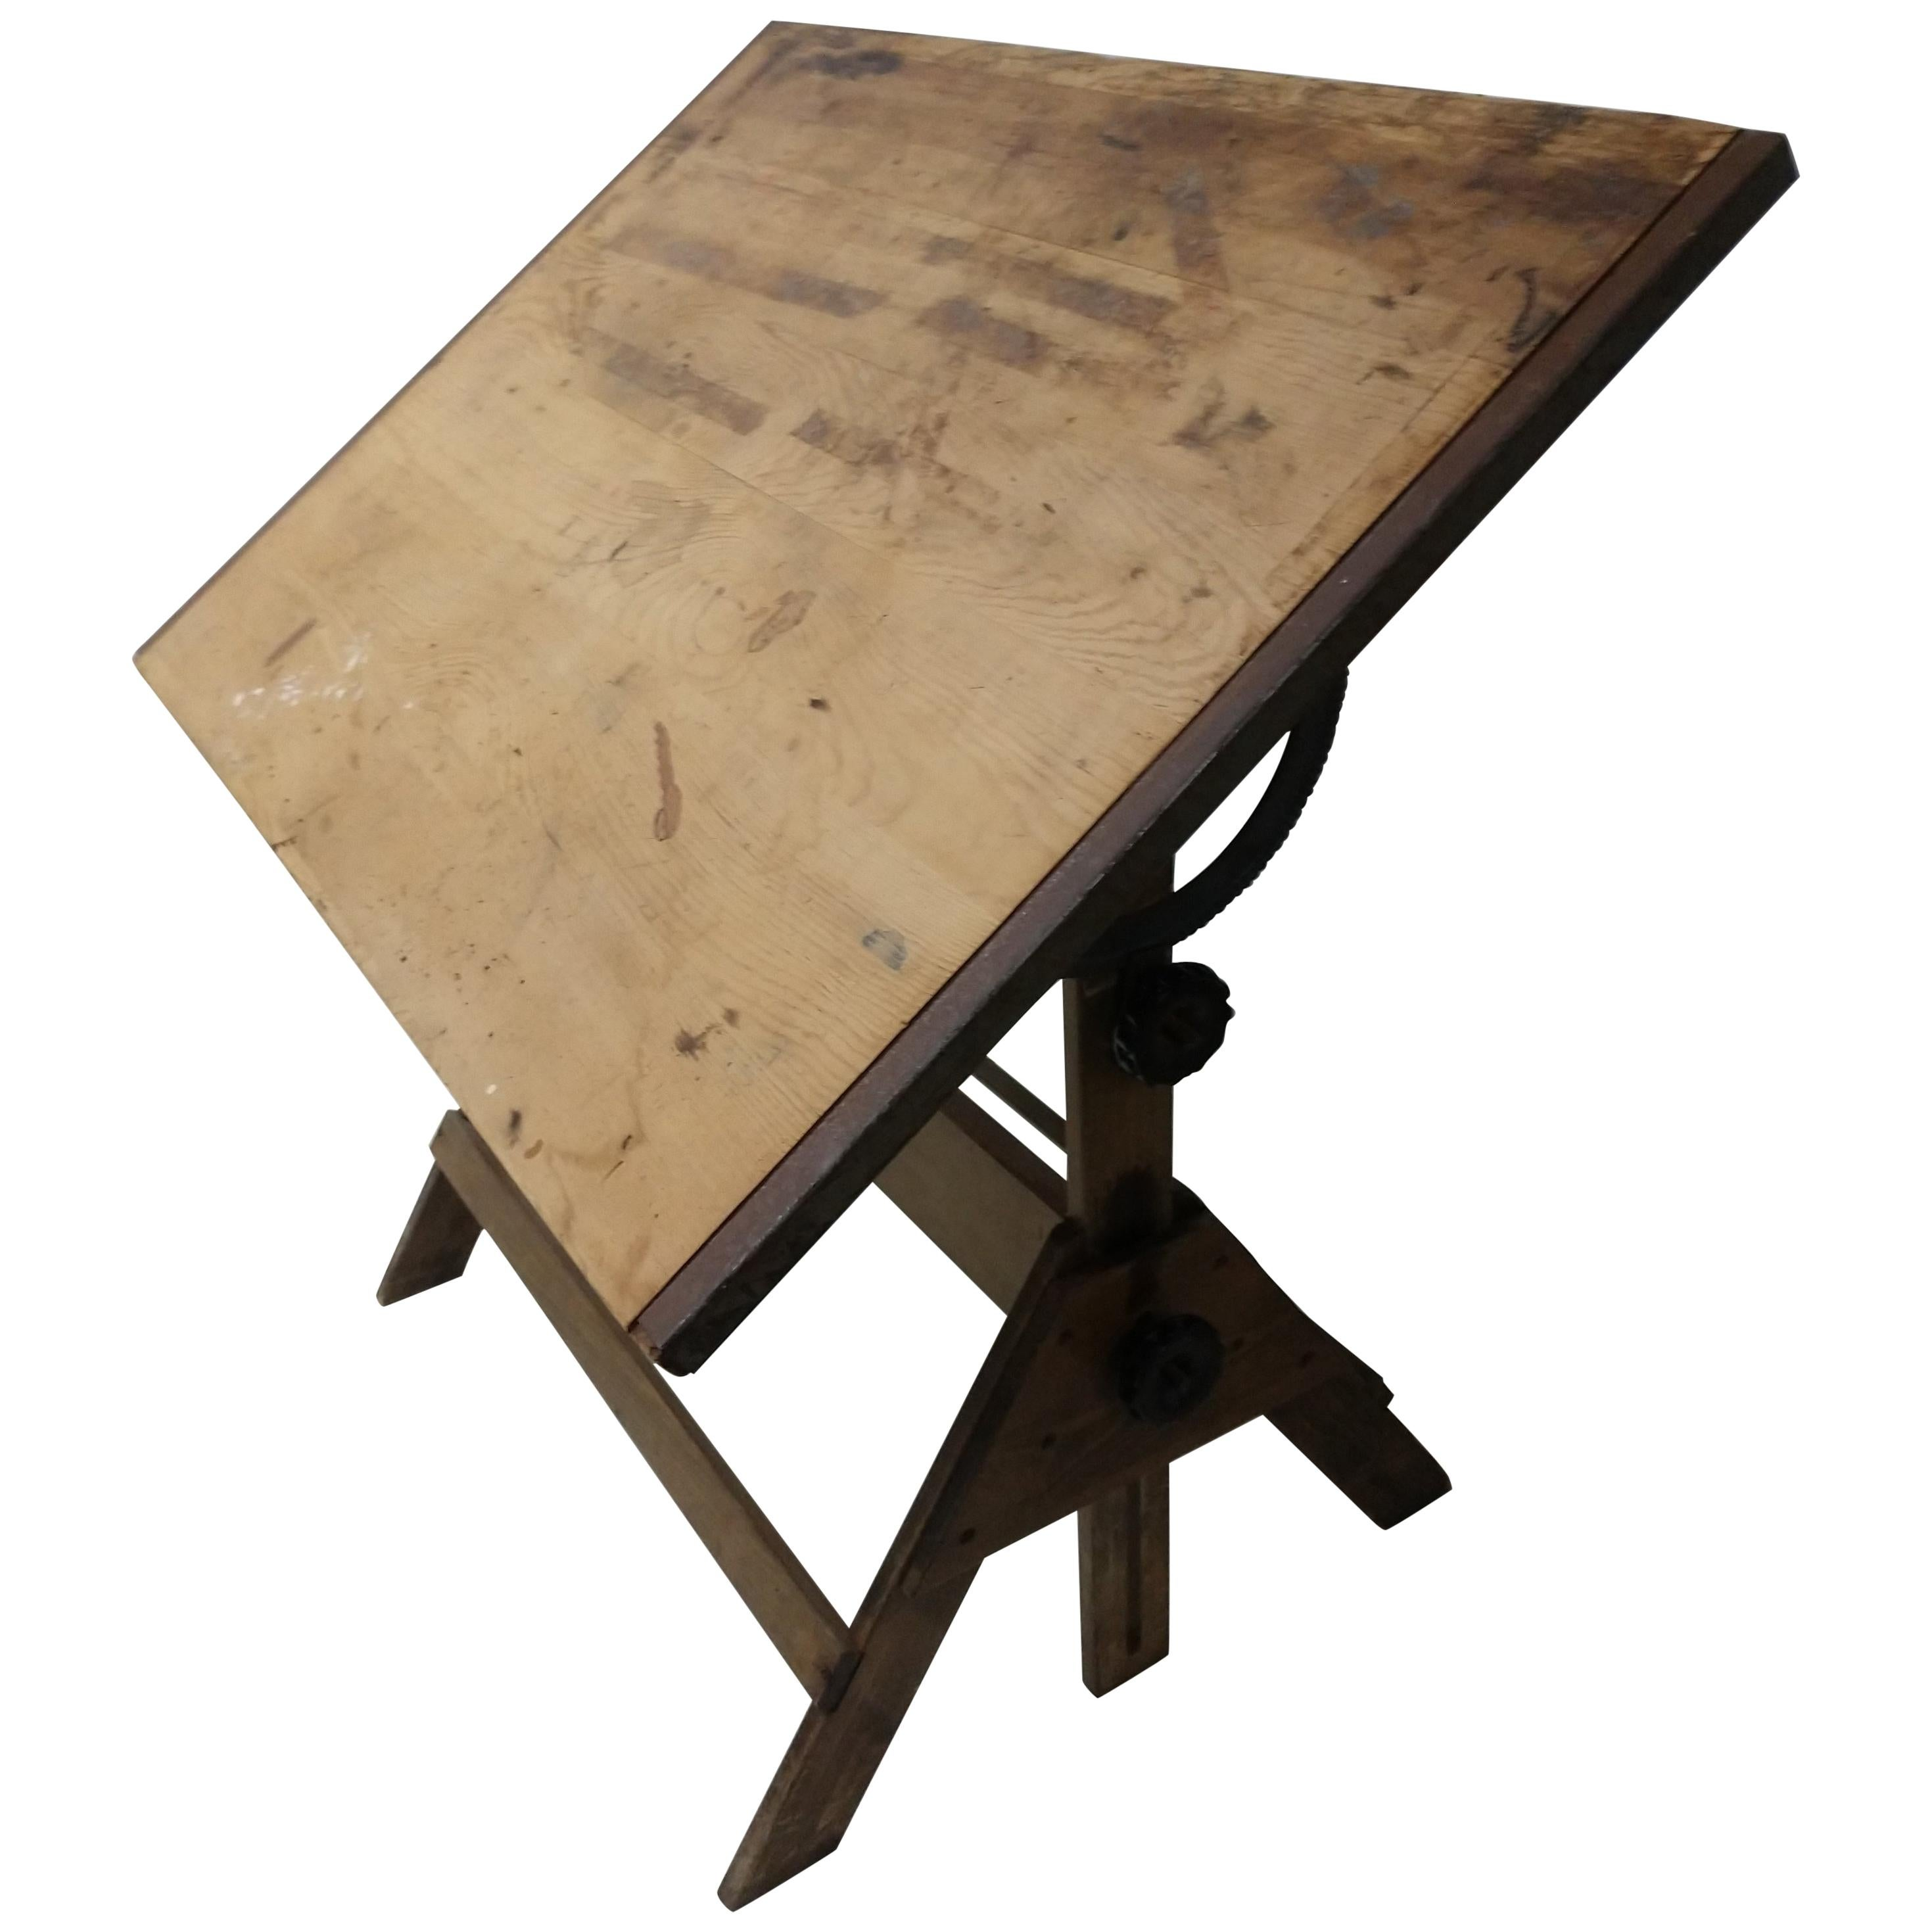 Mid-20th Century Wood and Iron Anco Drafting Table